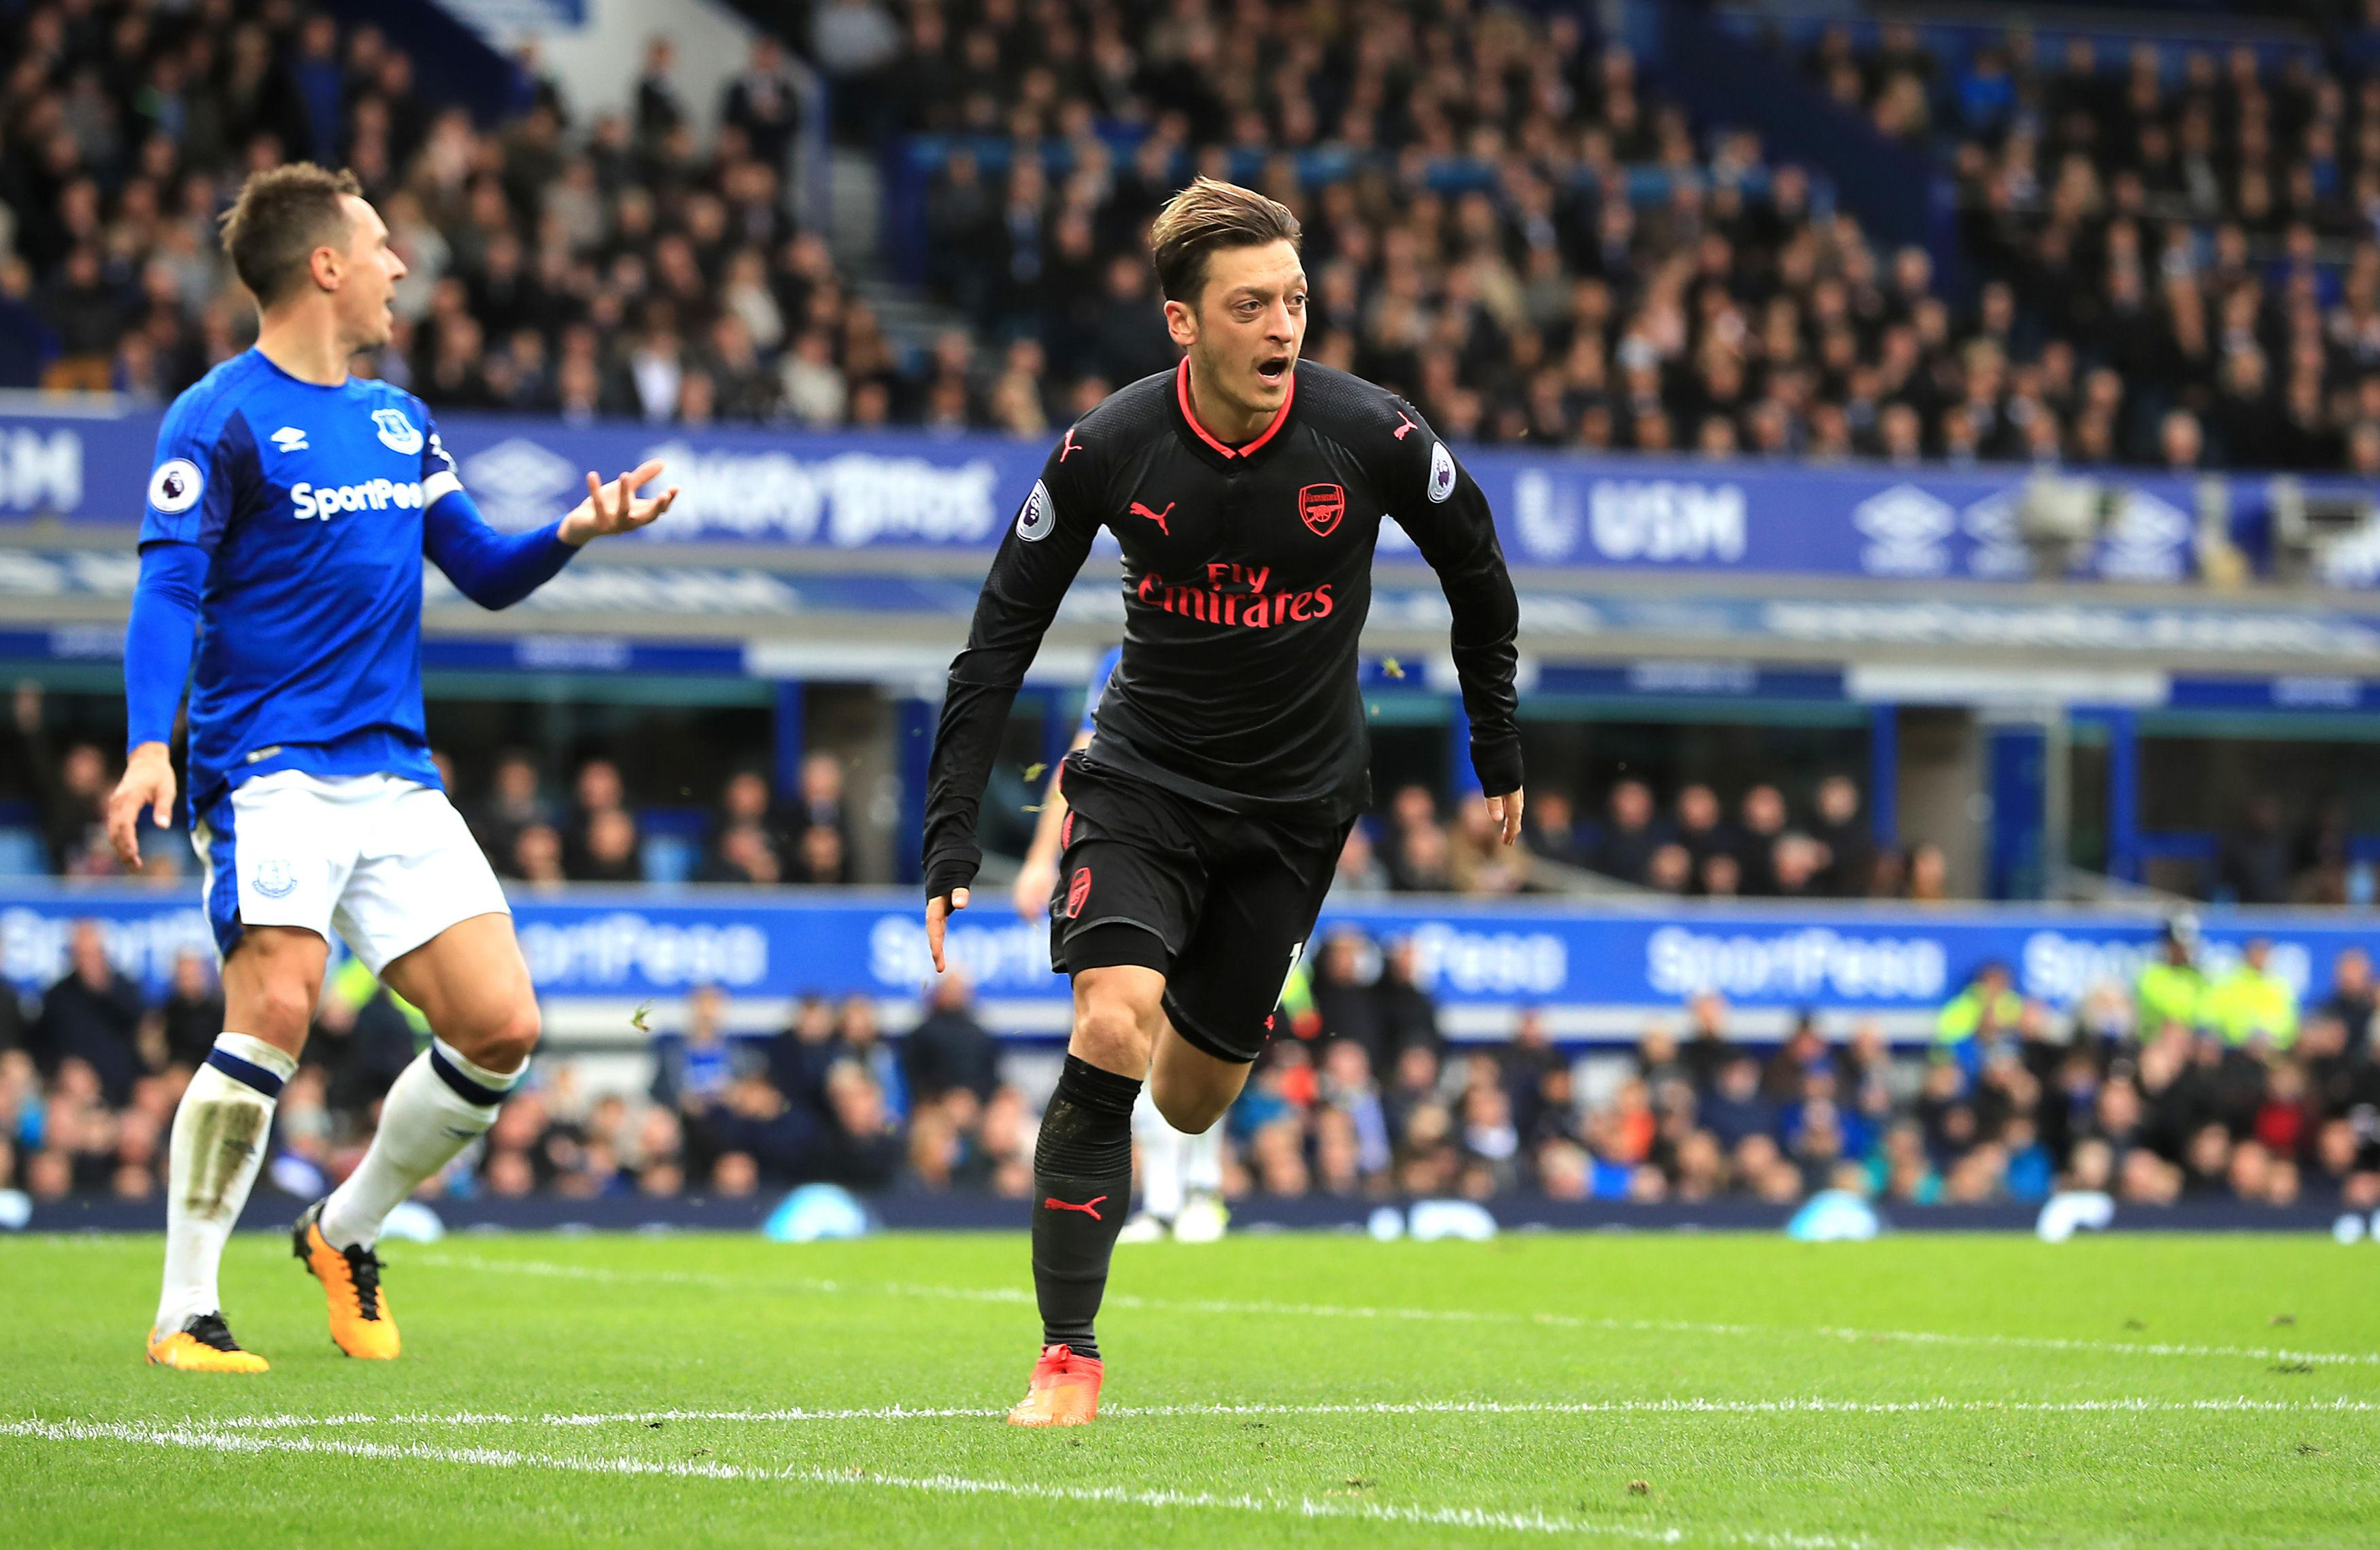 Ozil flicked home a header to put Arsenal 2-1 up